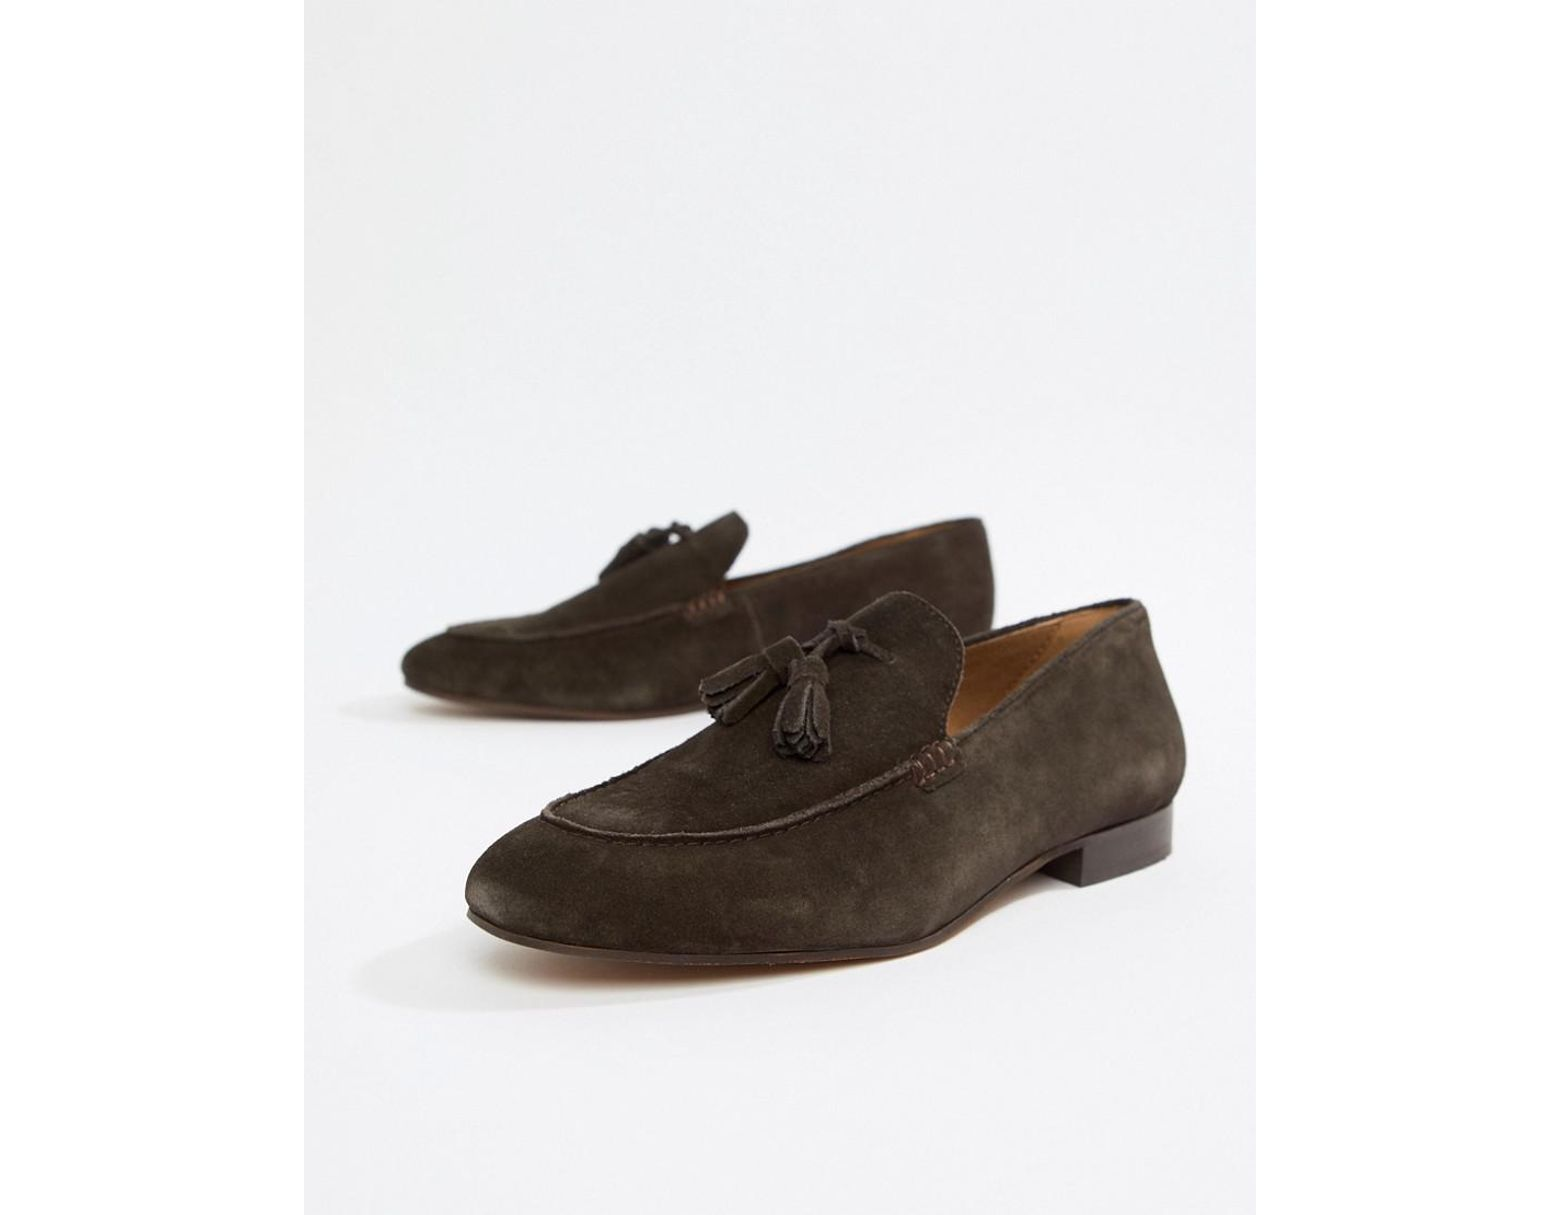 3598421919ad5 H by Hudson Bolton Tassel Loafers In Brown Suede in Brown for Men - Save  50% - Lyst